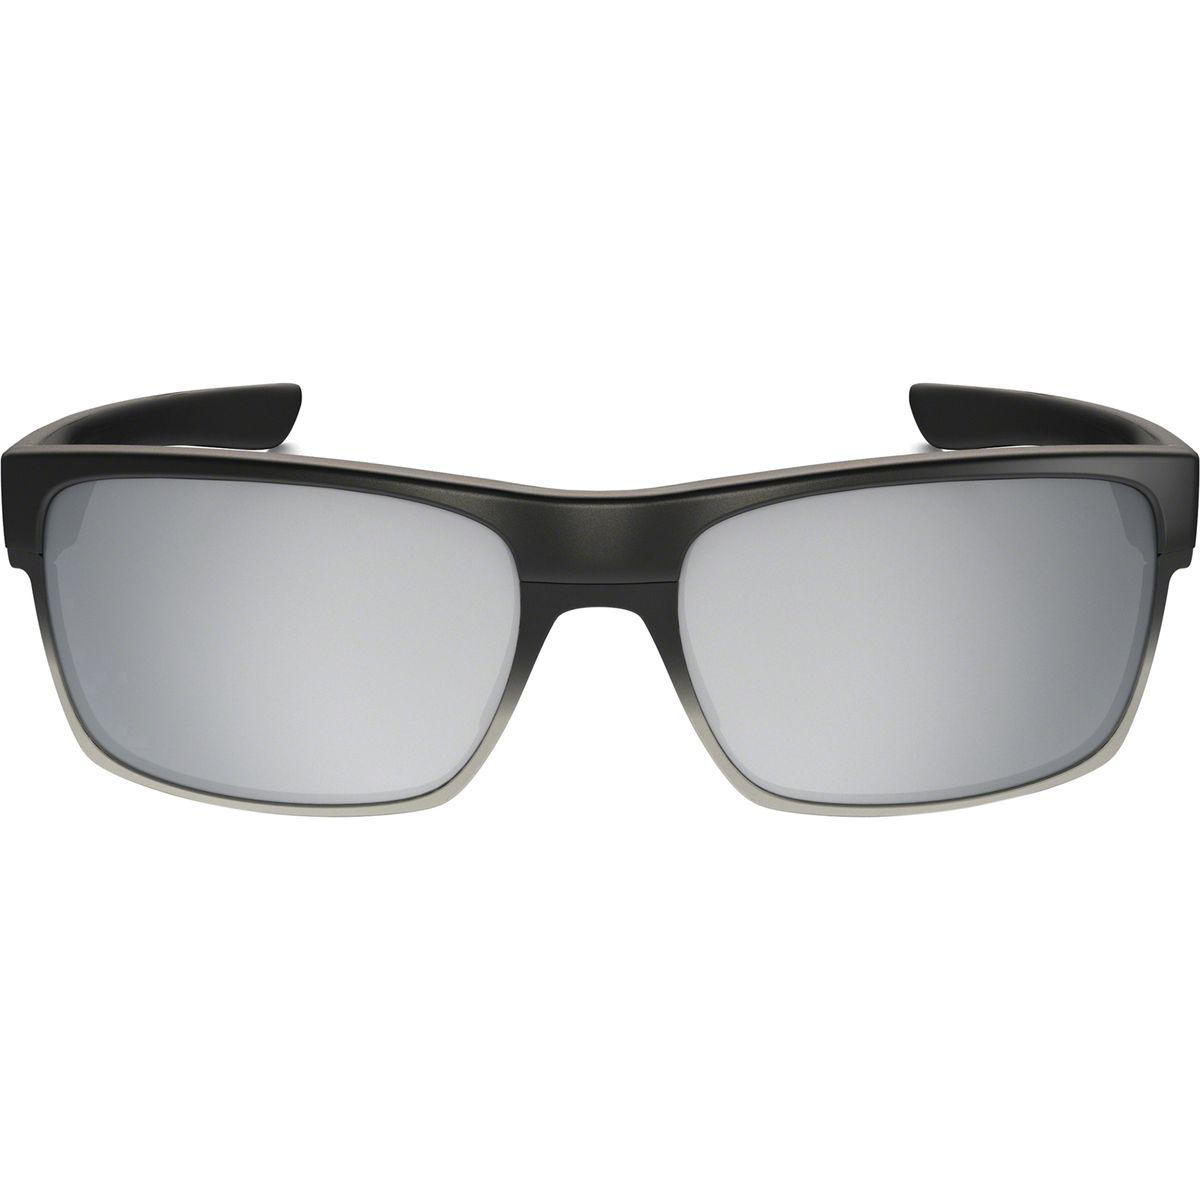 ae30ae7e9f Oakley - Black Limited Edition Ferrari Twoface Sunglasses for Men - Lyst.  View fullscreen